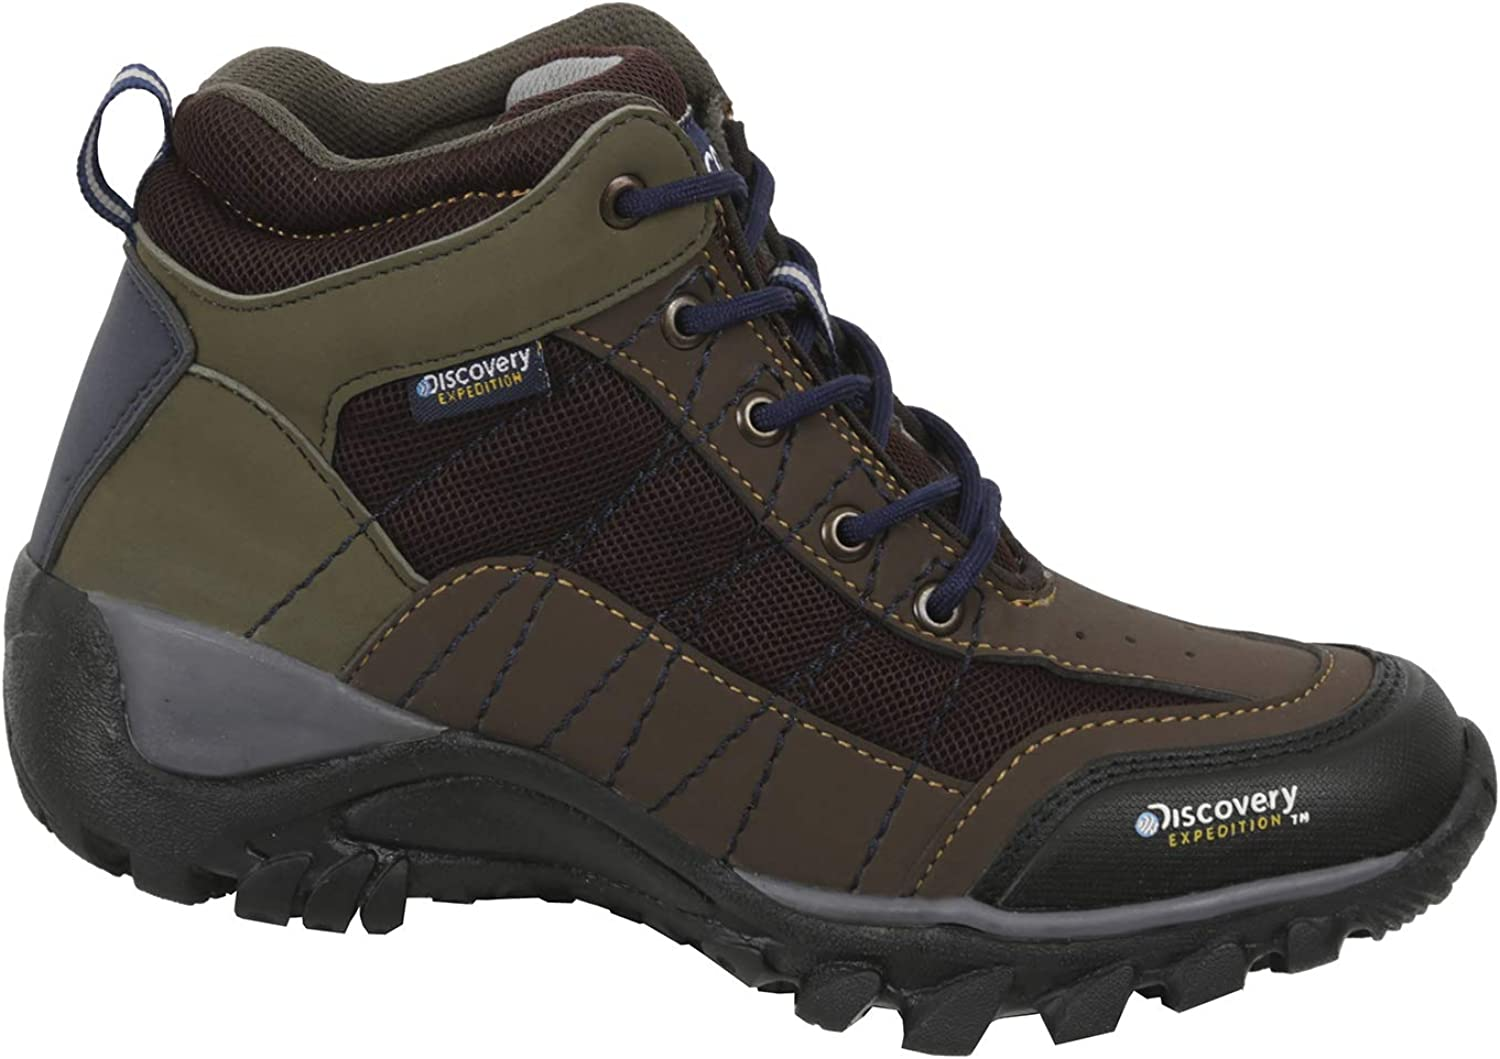 Discovery EXPEDITION Boot